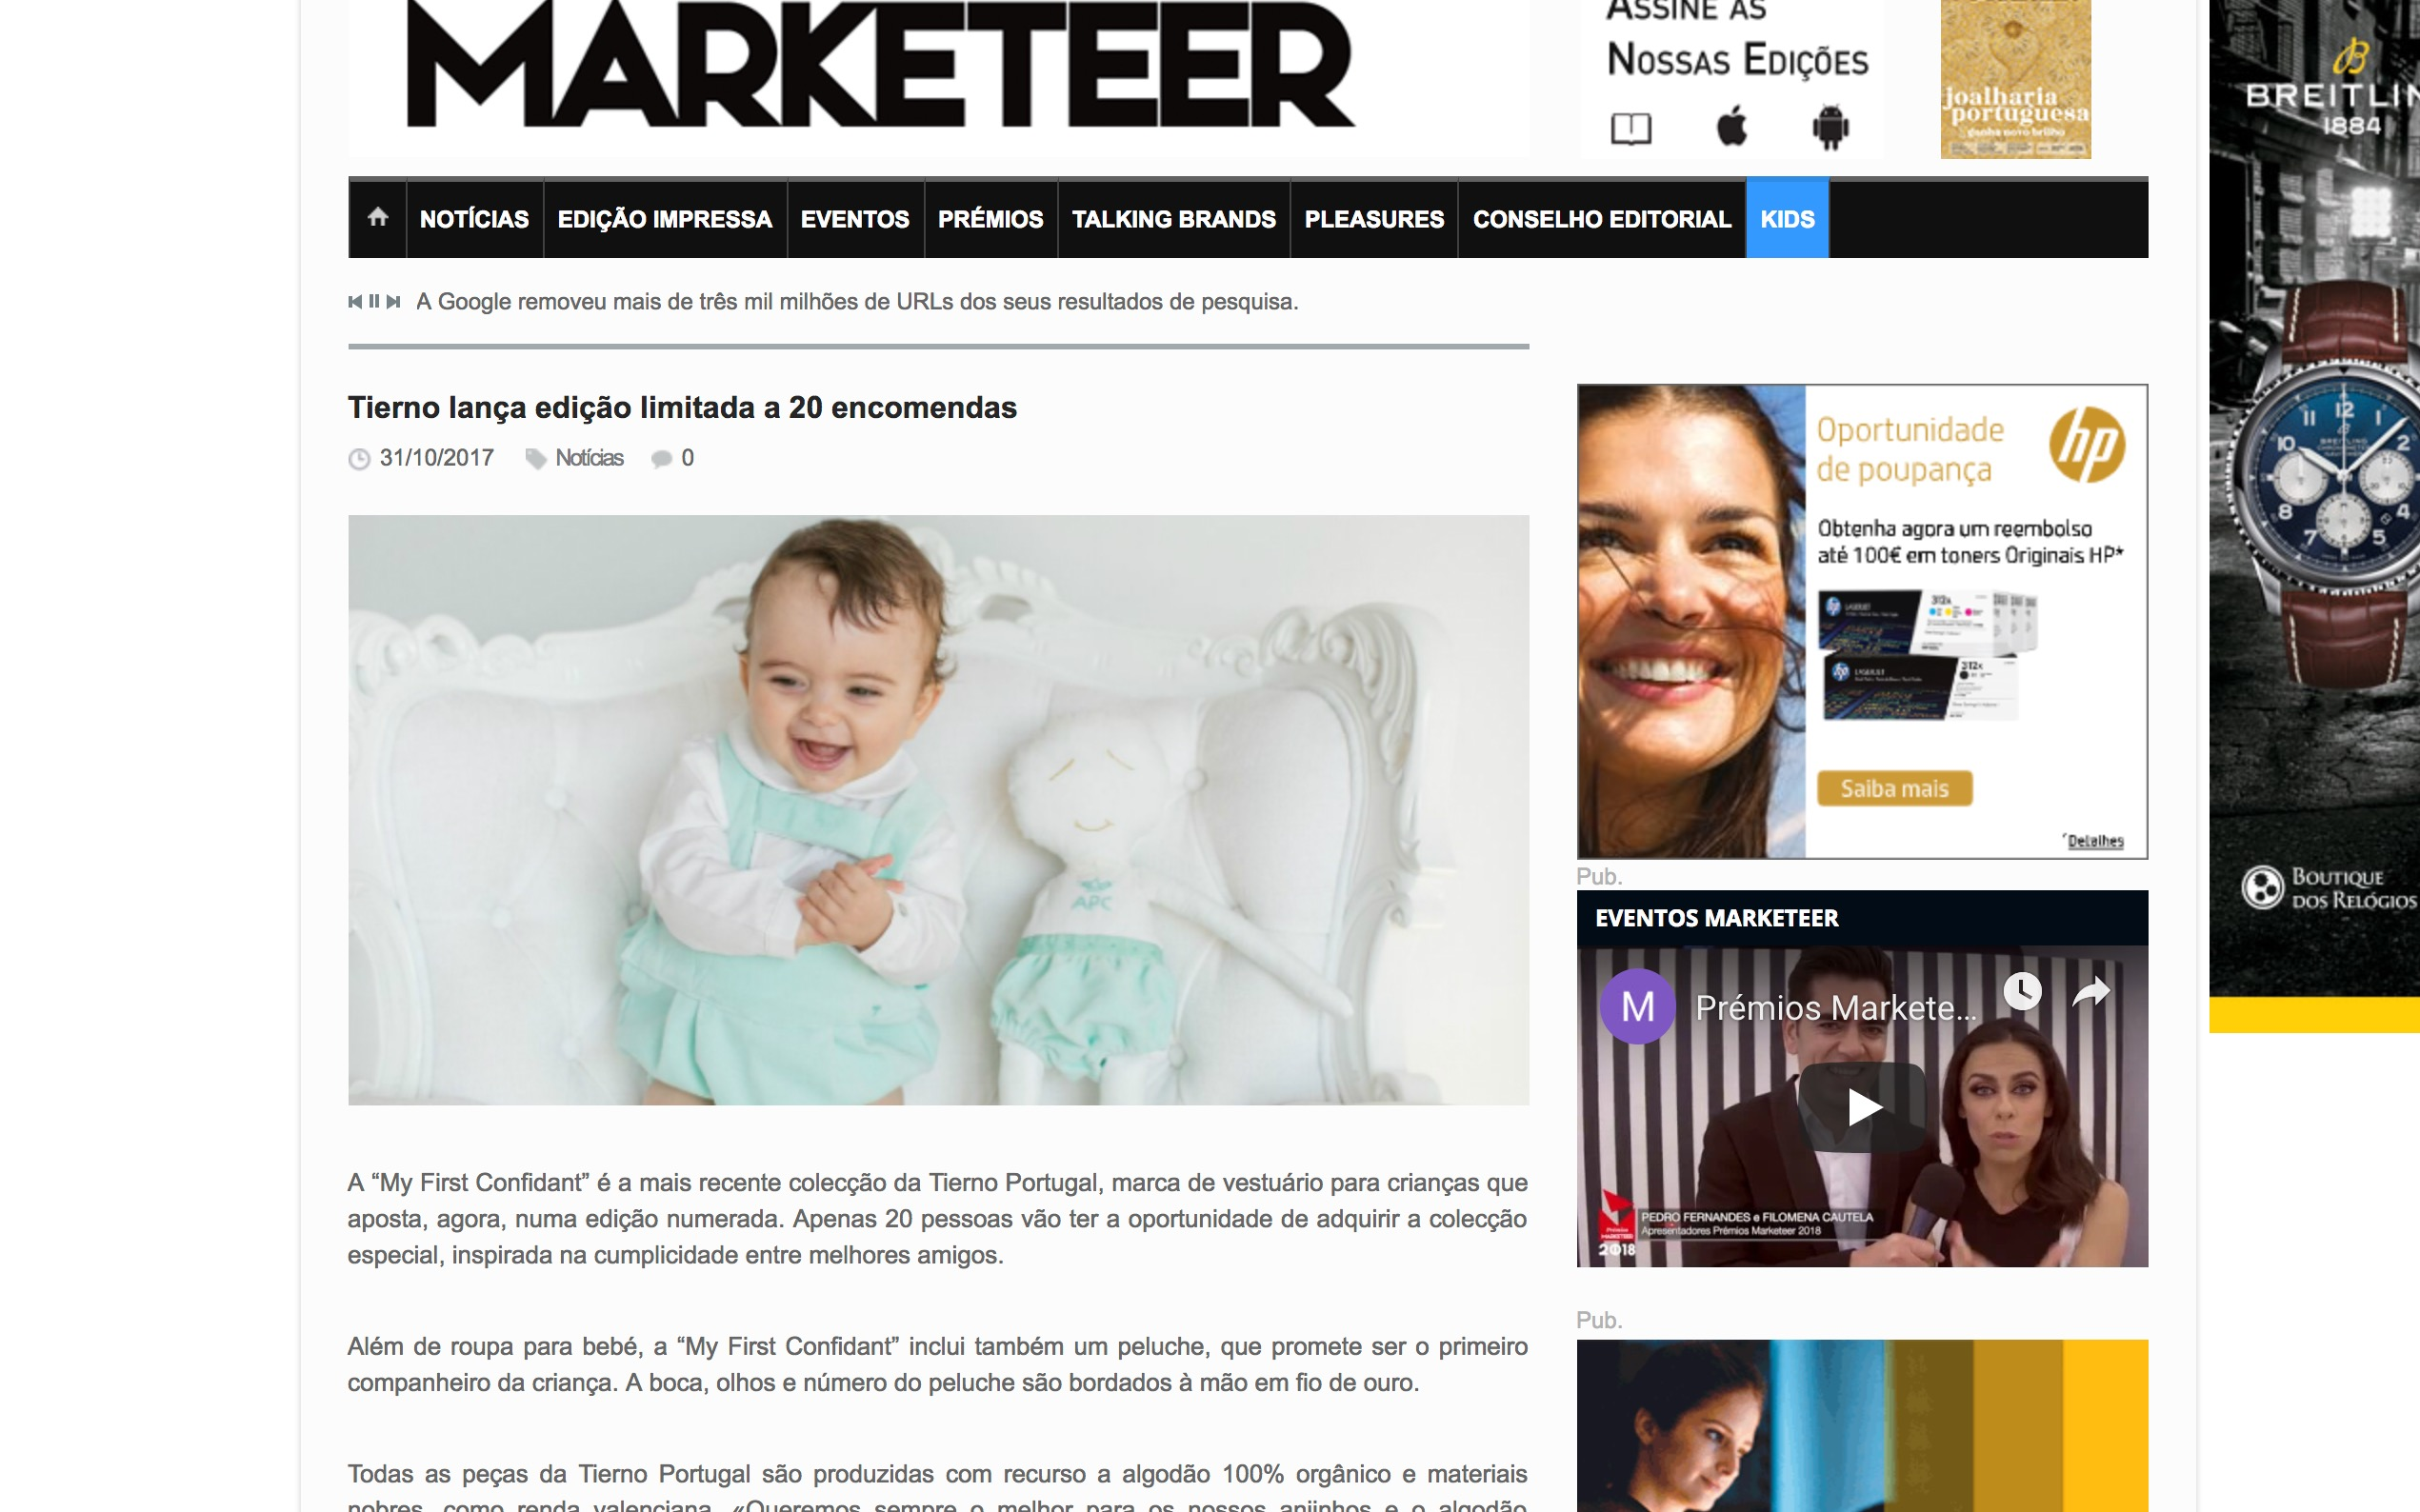 TIERNO LIMITED EDITION FEATURED IN MARKETEER